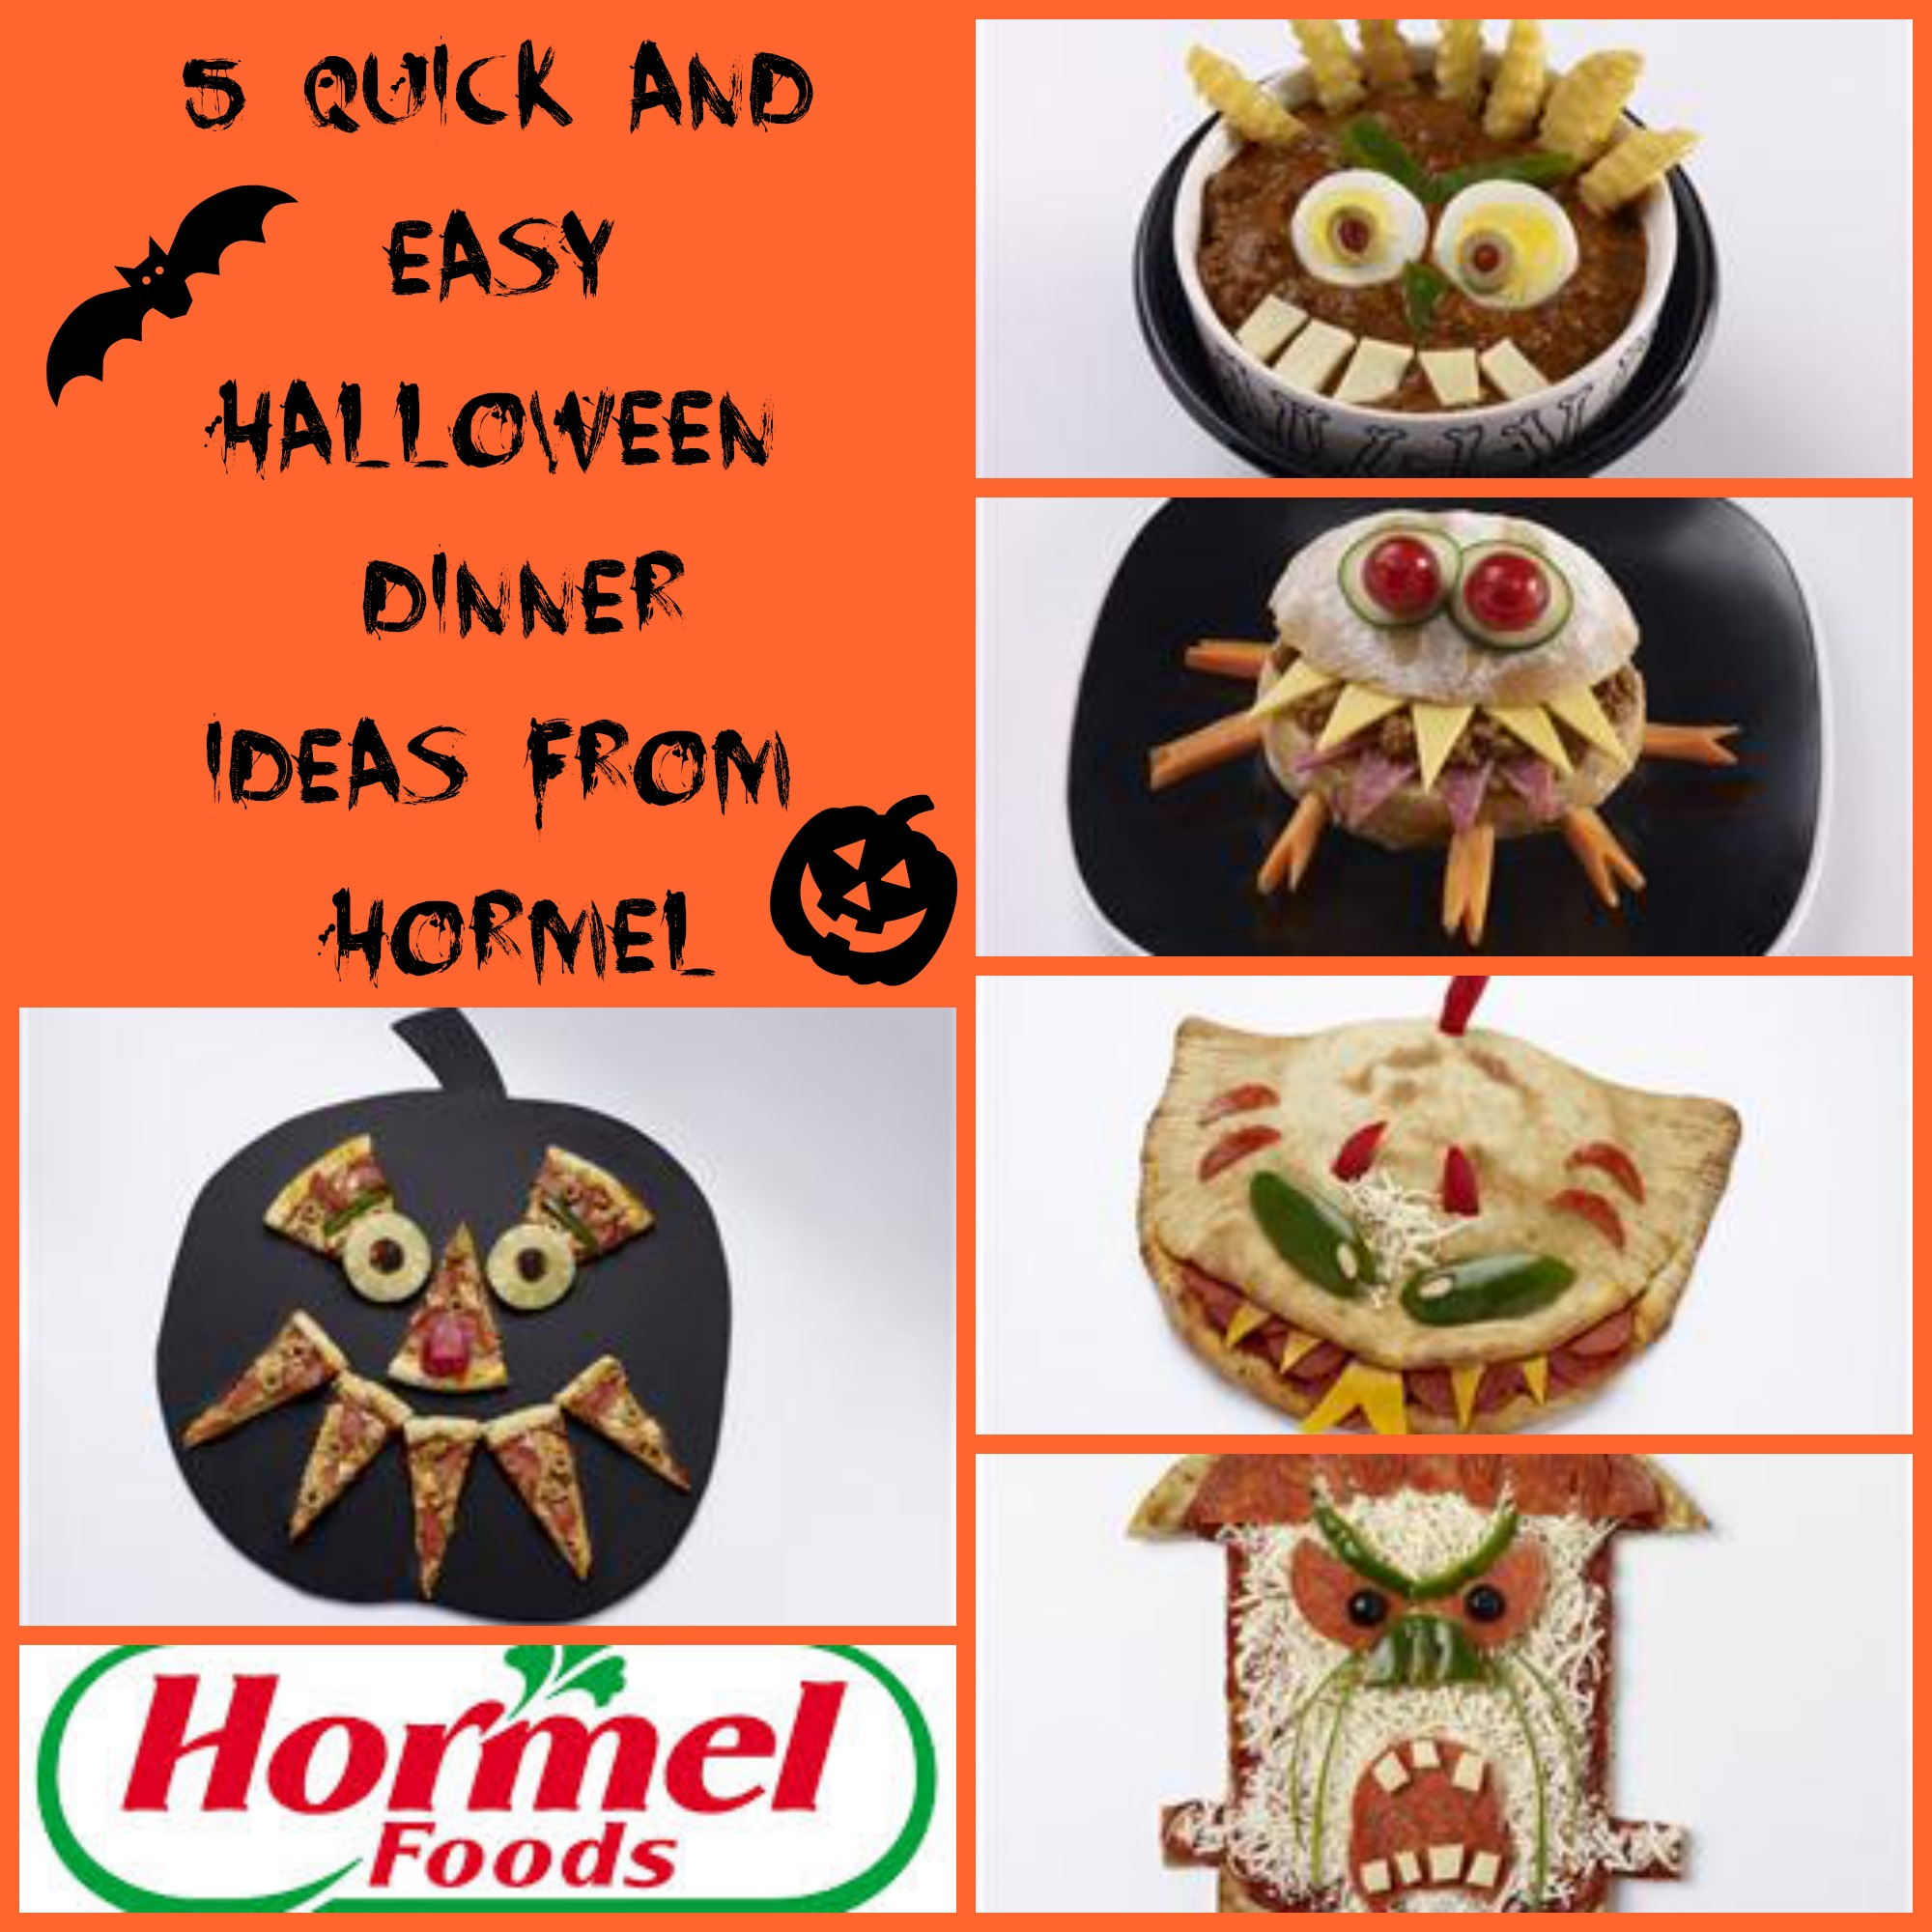 Quick & Easy Halloween Dinners from Hormel